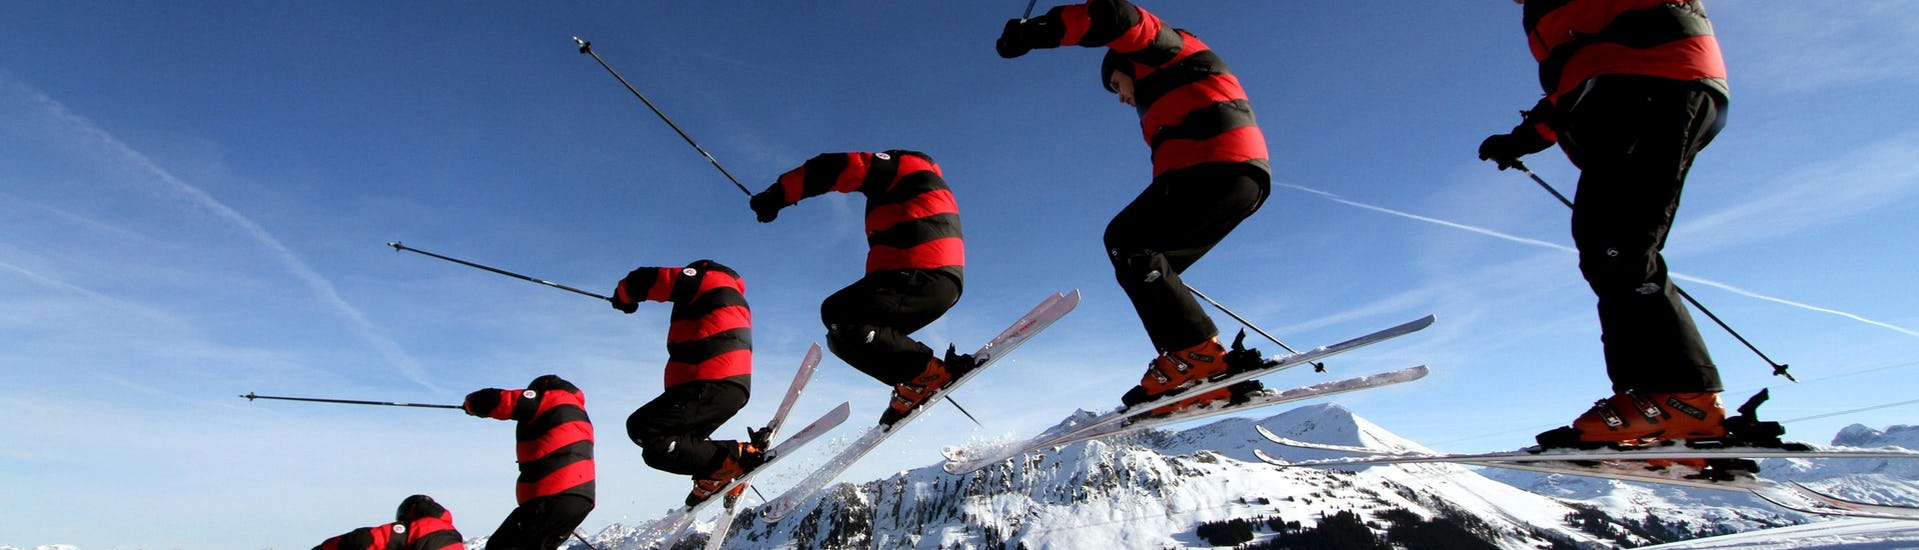 Ski Instructor Private for Adults - All Levels